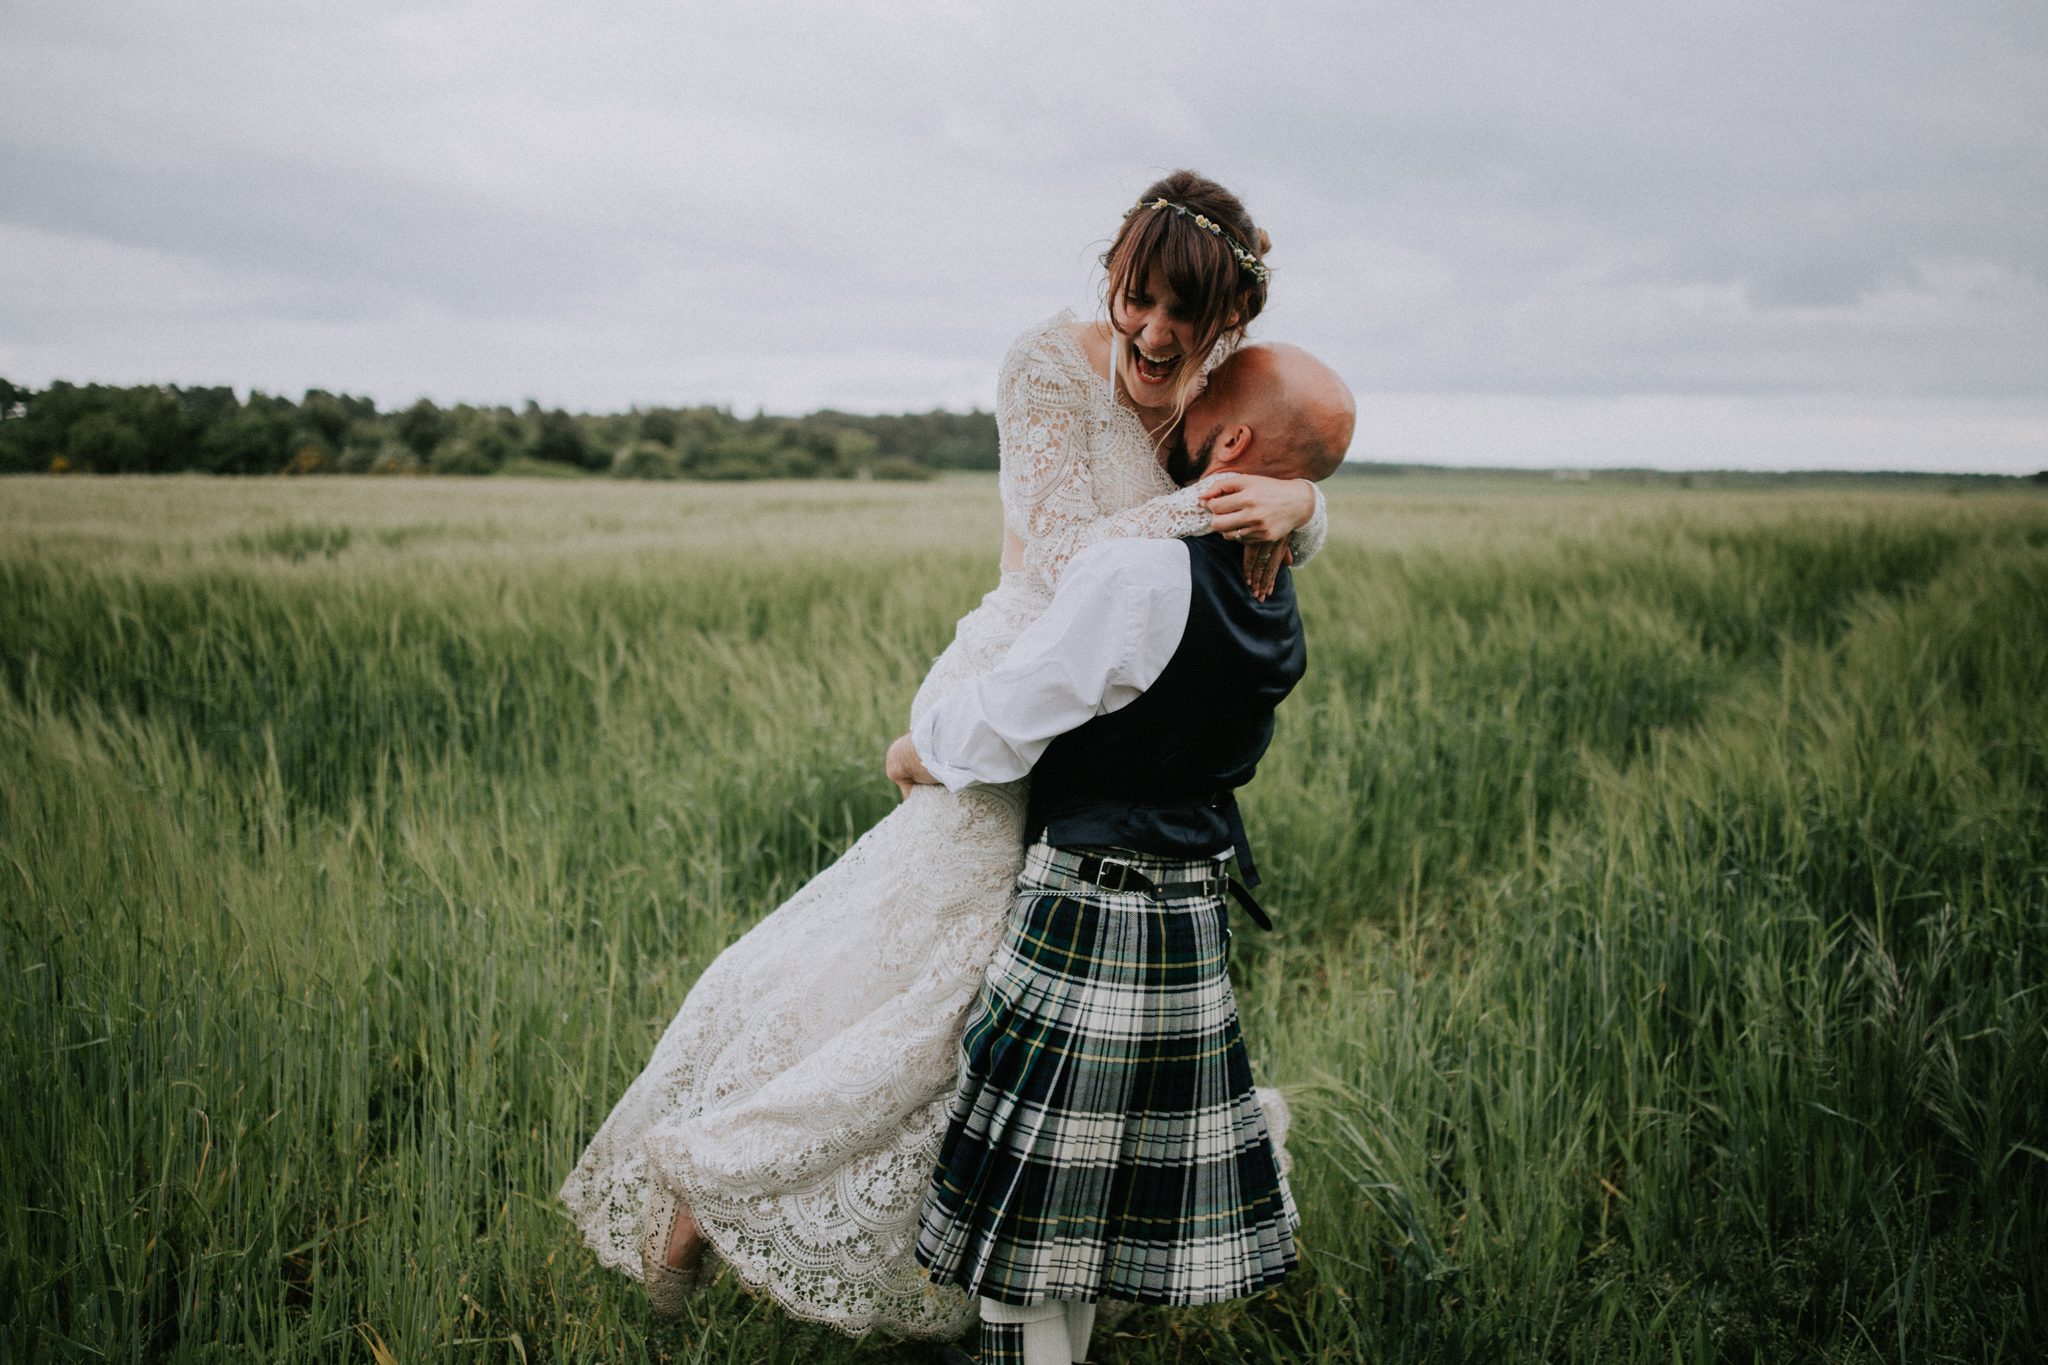 A modern wedding photography